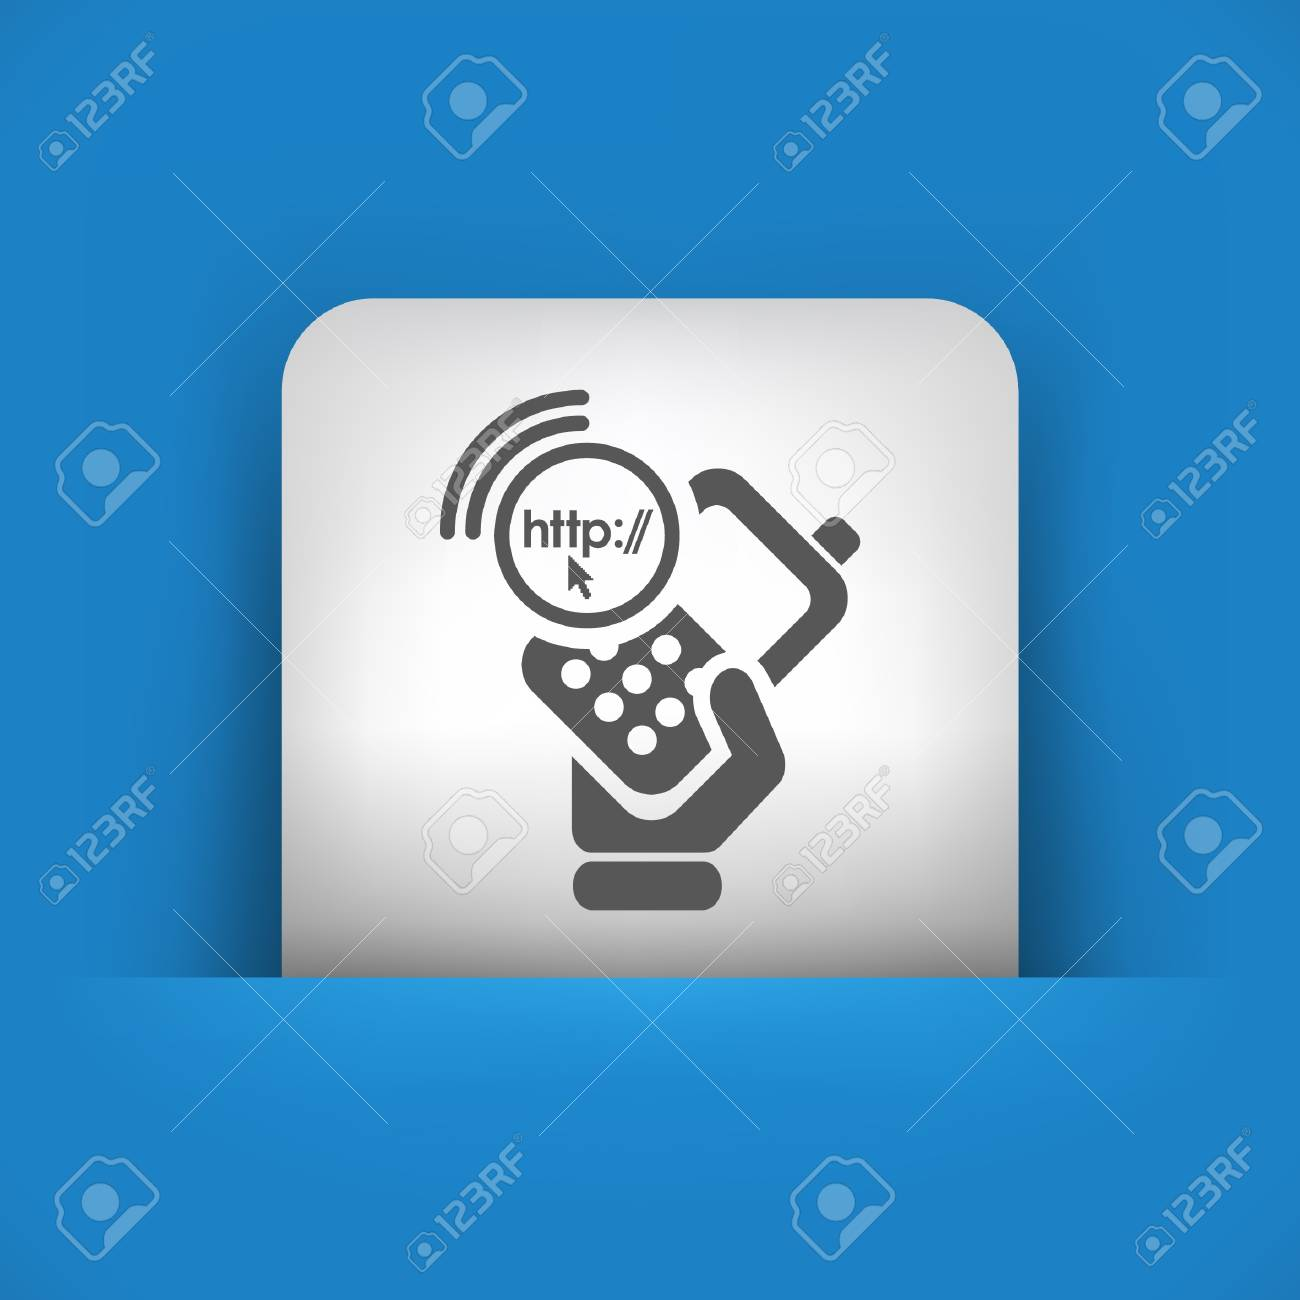 Vector illustration of single blue and gray isolated icon. Stock Vector - 17785412